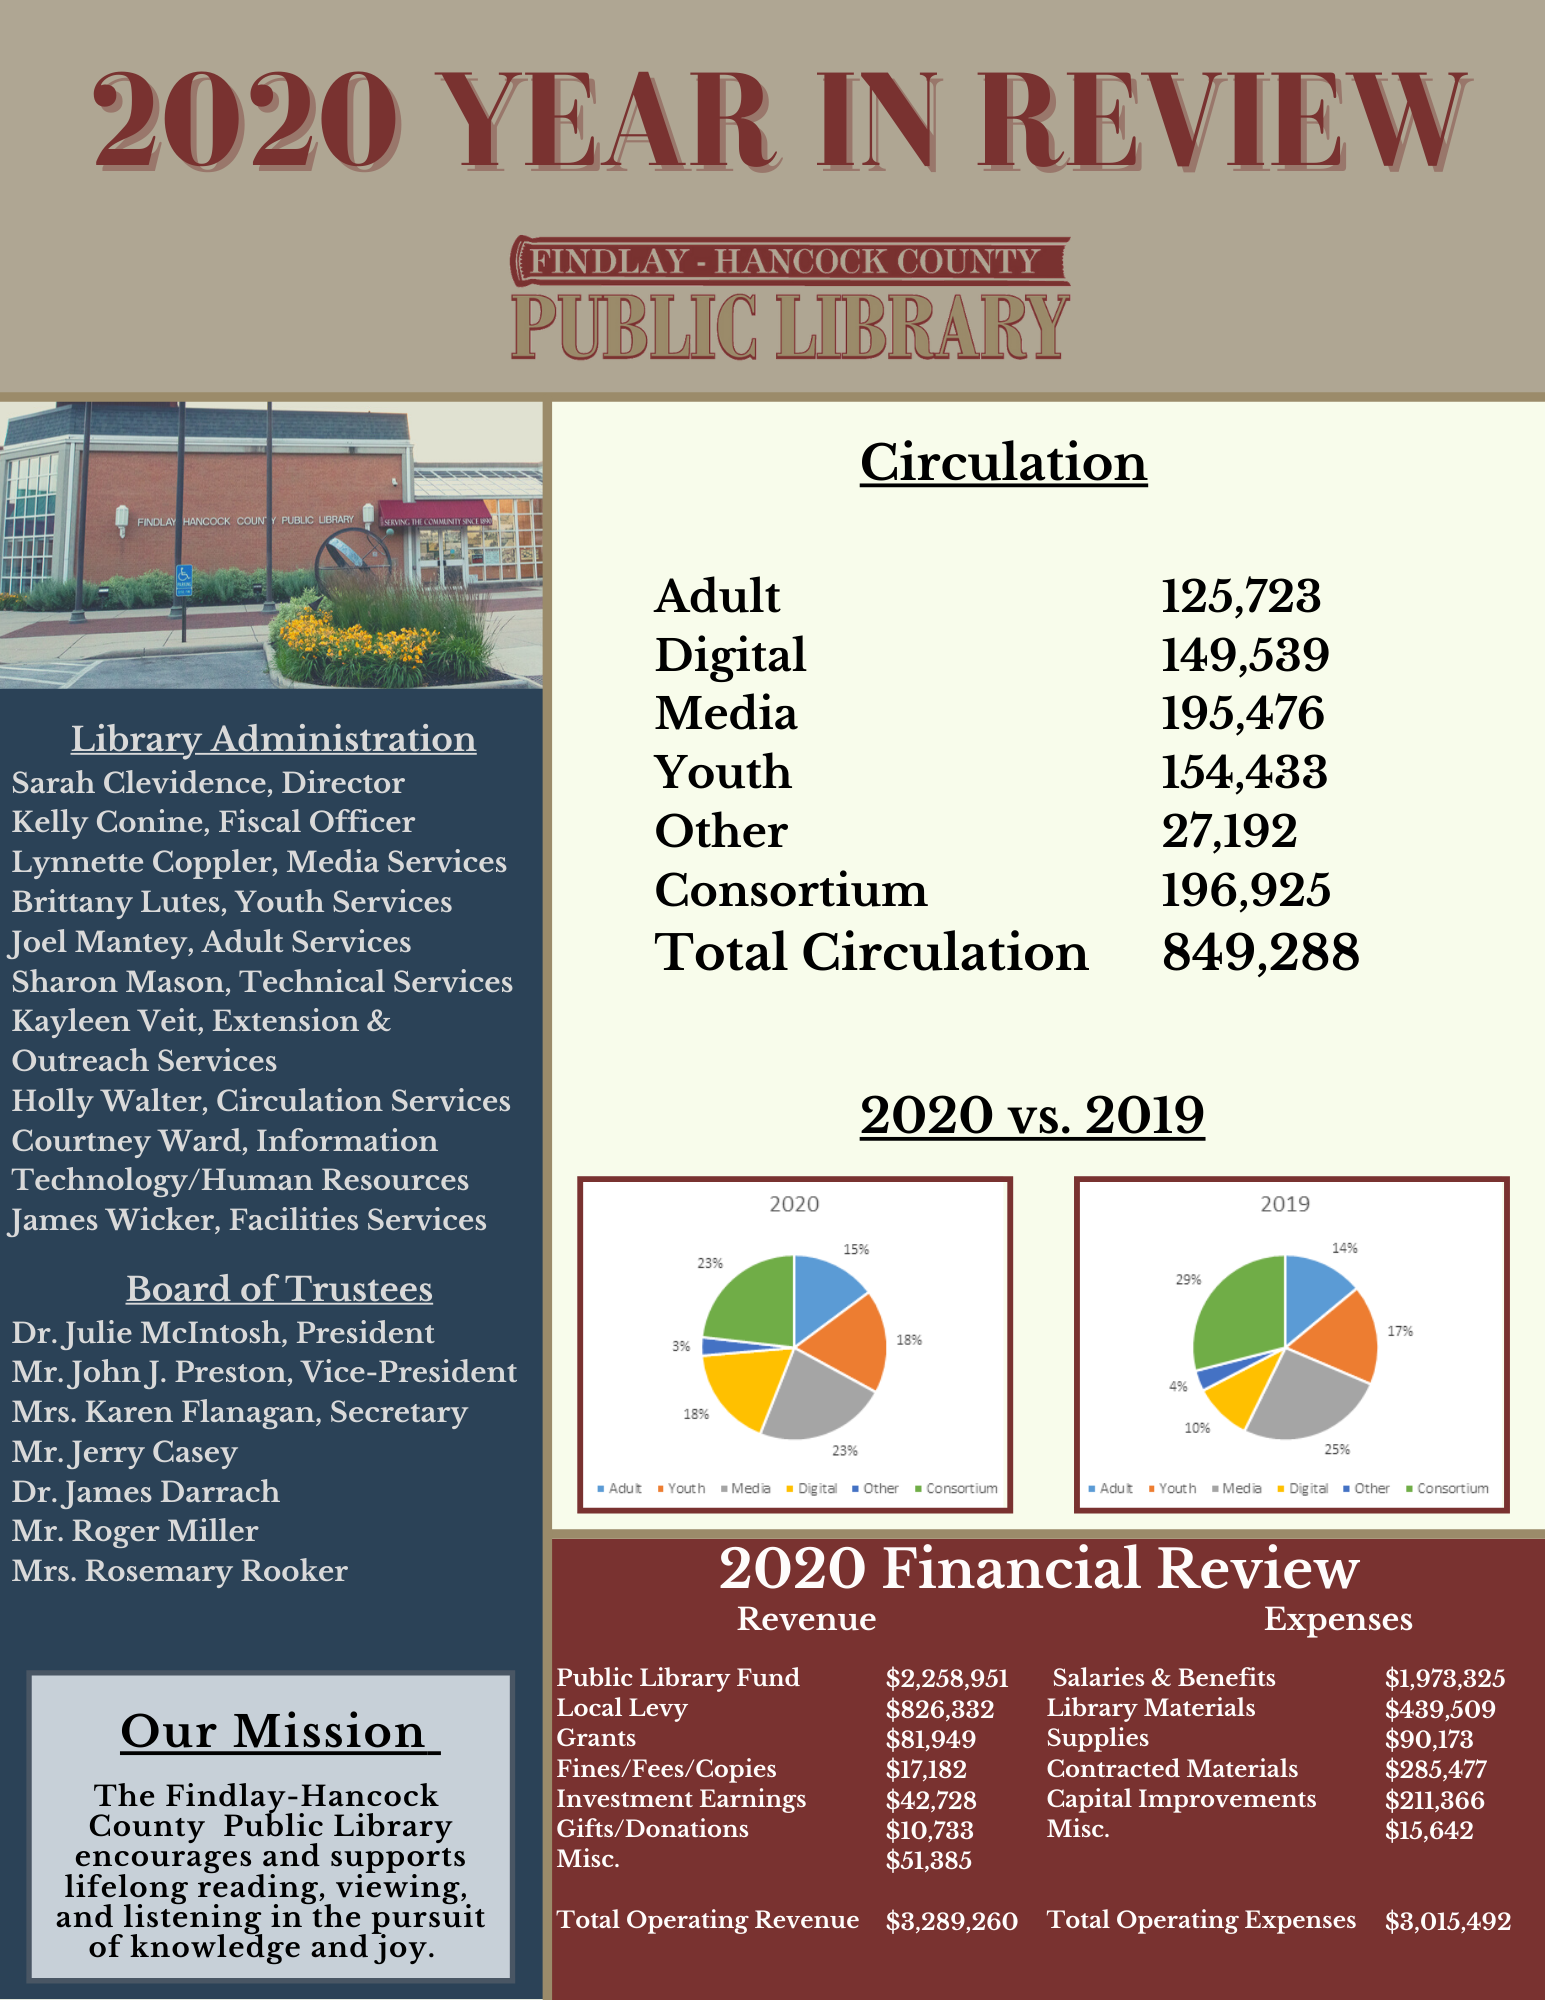 financial and circulation information in red and blue lettering